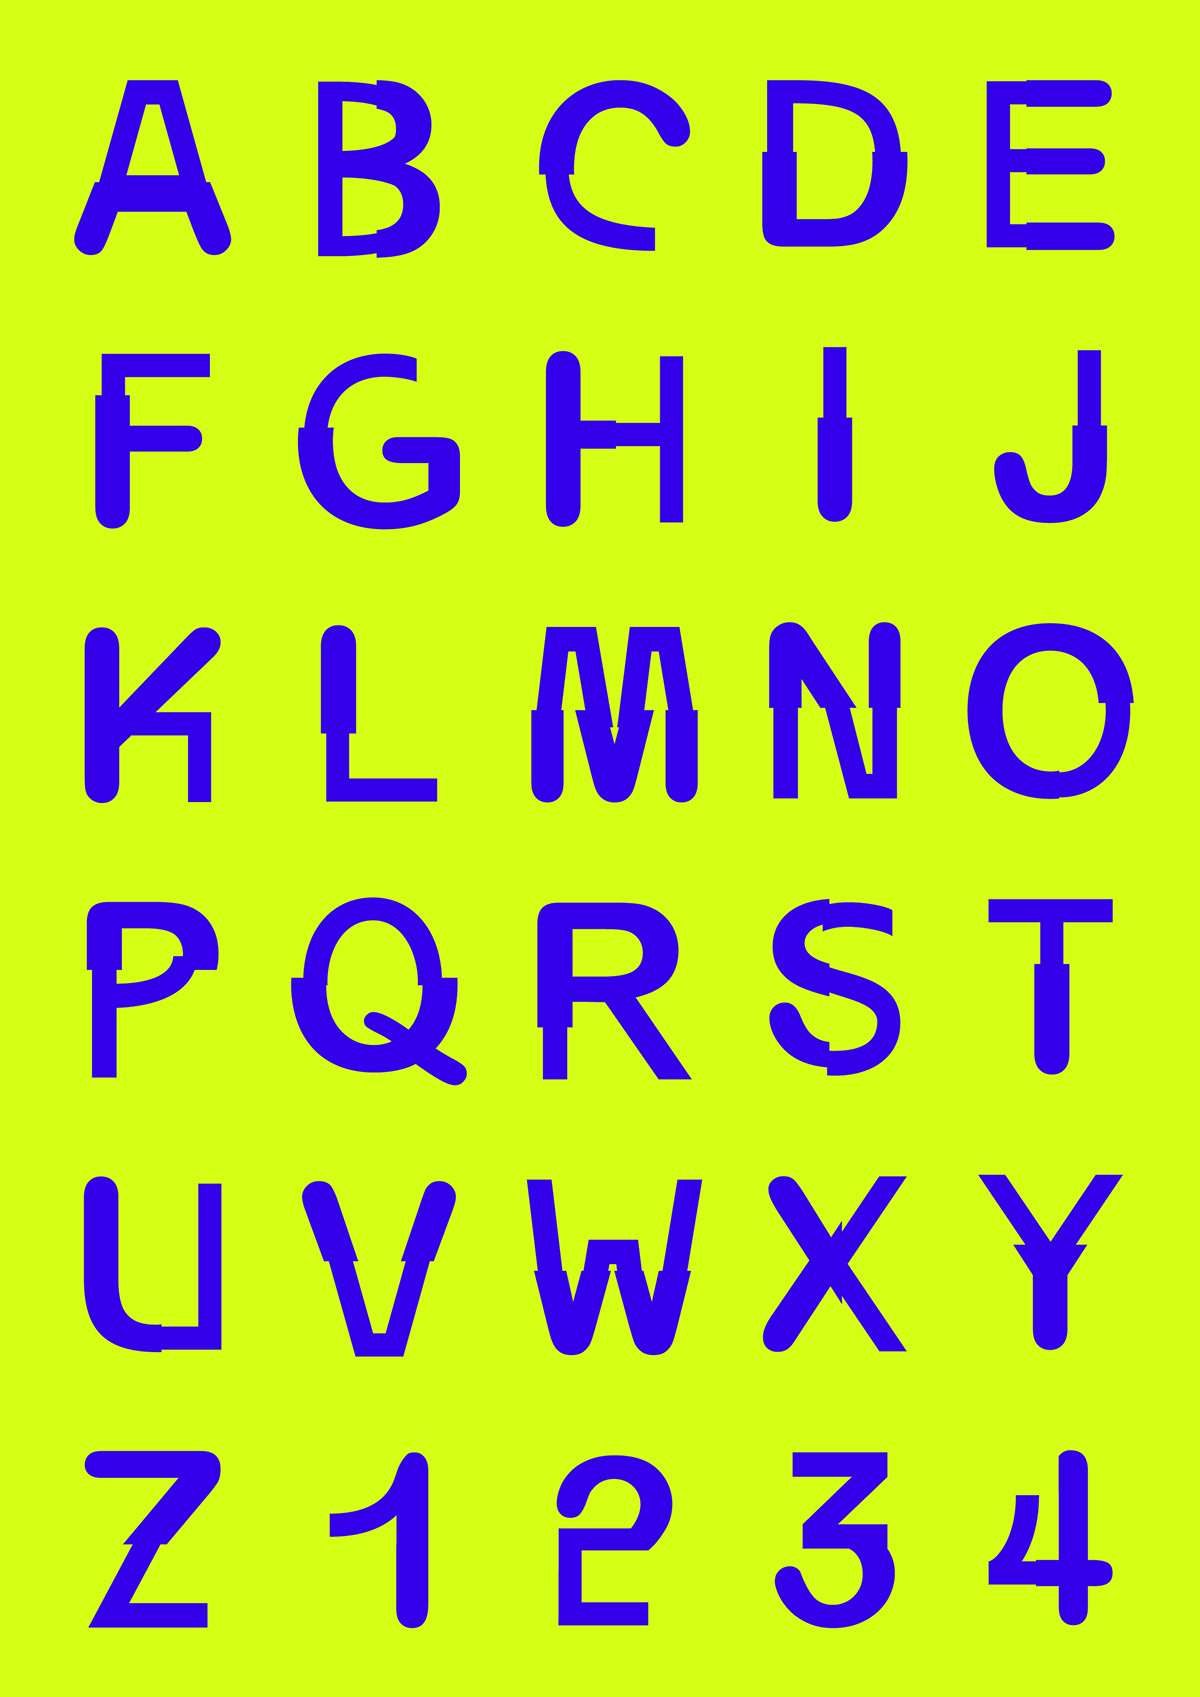 cam boy cyber culture font graphic design  New Zealand onlyfans type typography